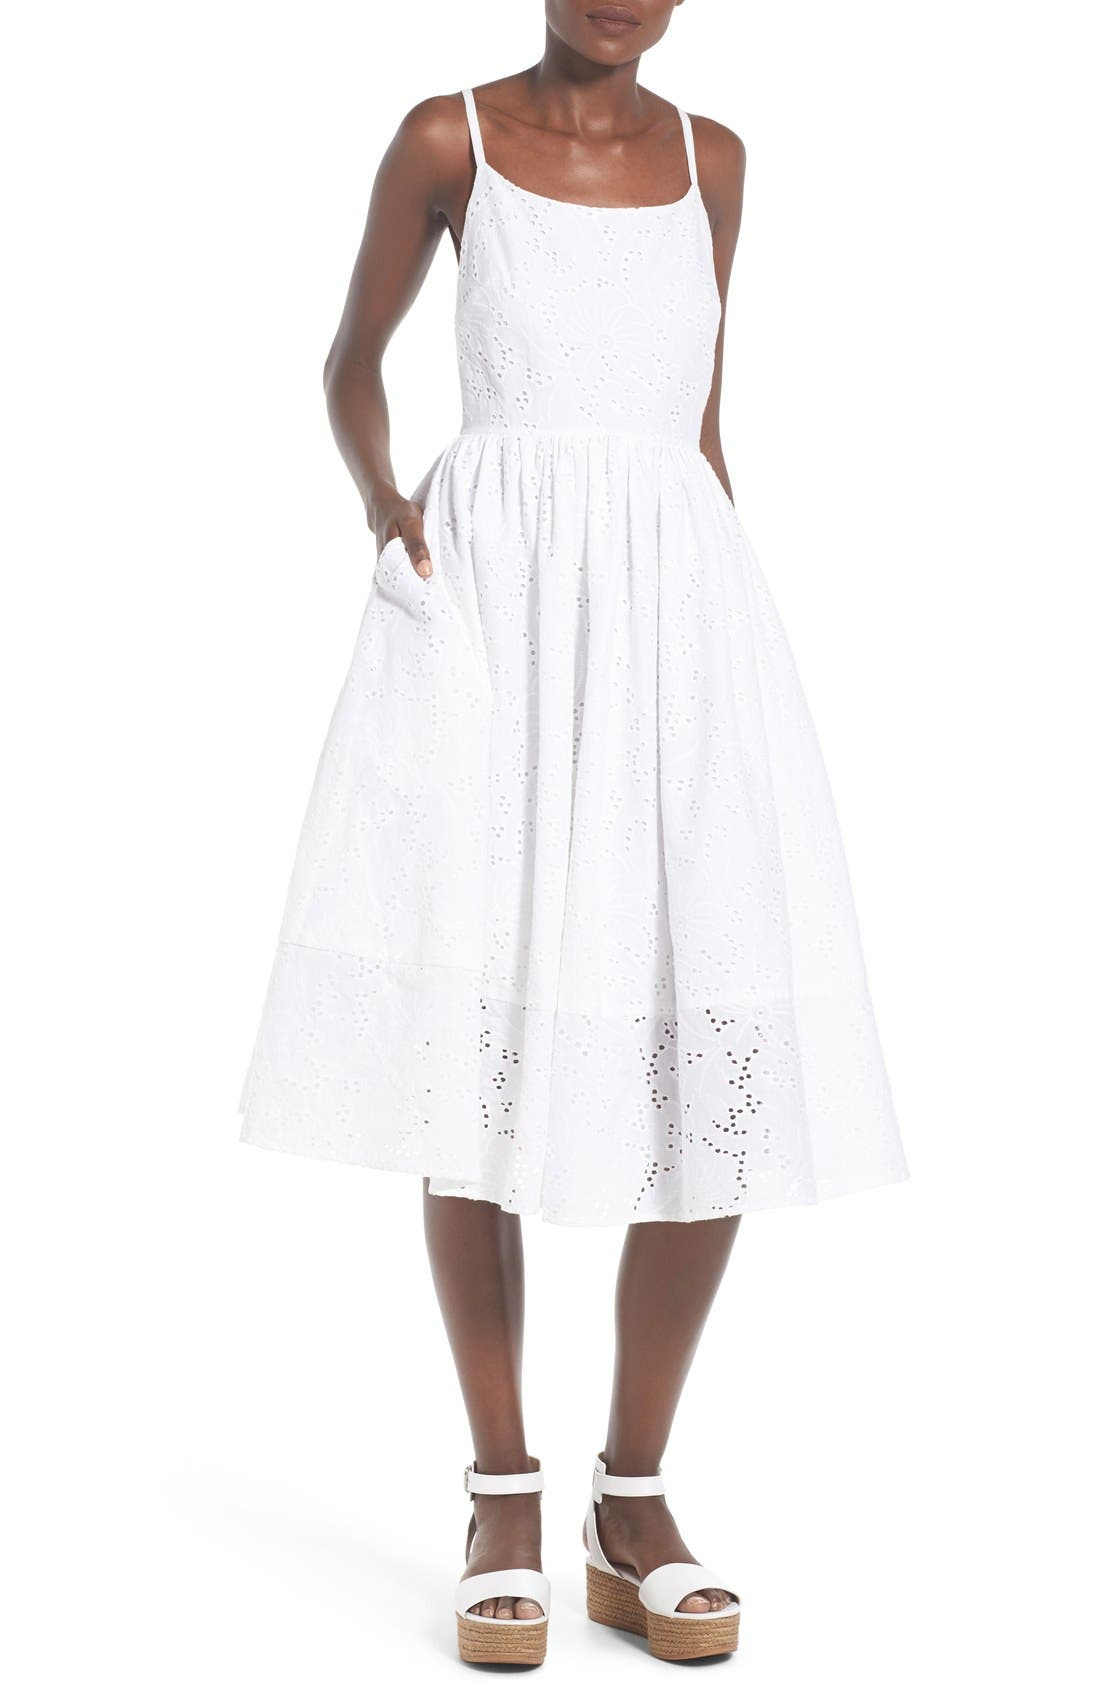 Alternate Image 1 Selected - Rachel Antonoff 'Melissa' Cotton Eyelet Fit & Flare Dress